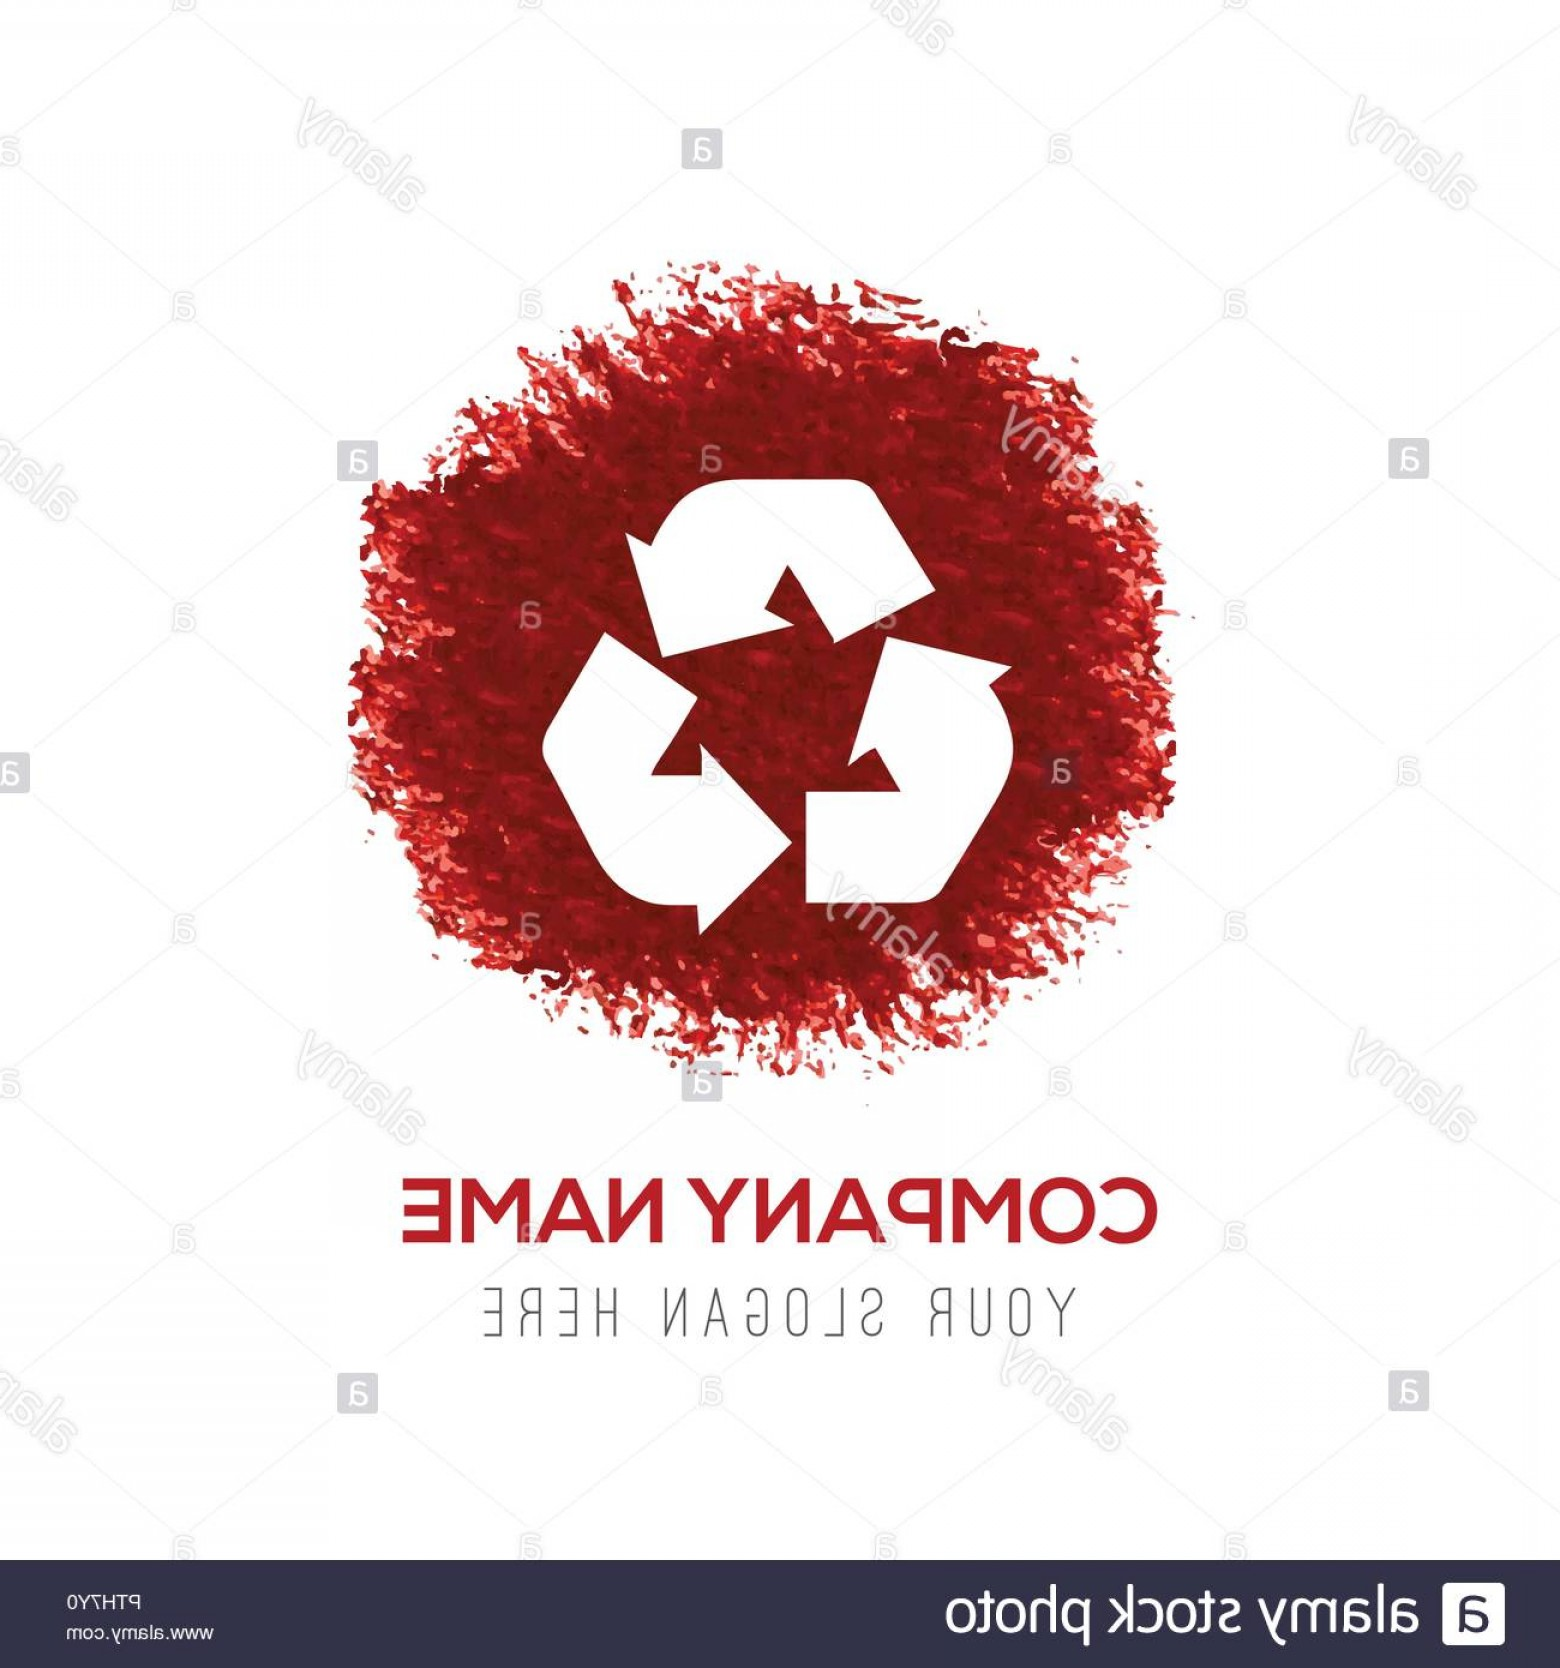 Recycle Icon Vector Red: Recycle Icon Red Watercolor Circle Splash Image